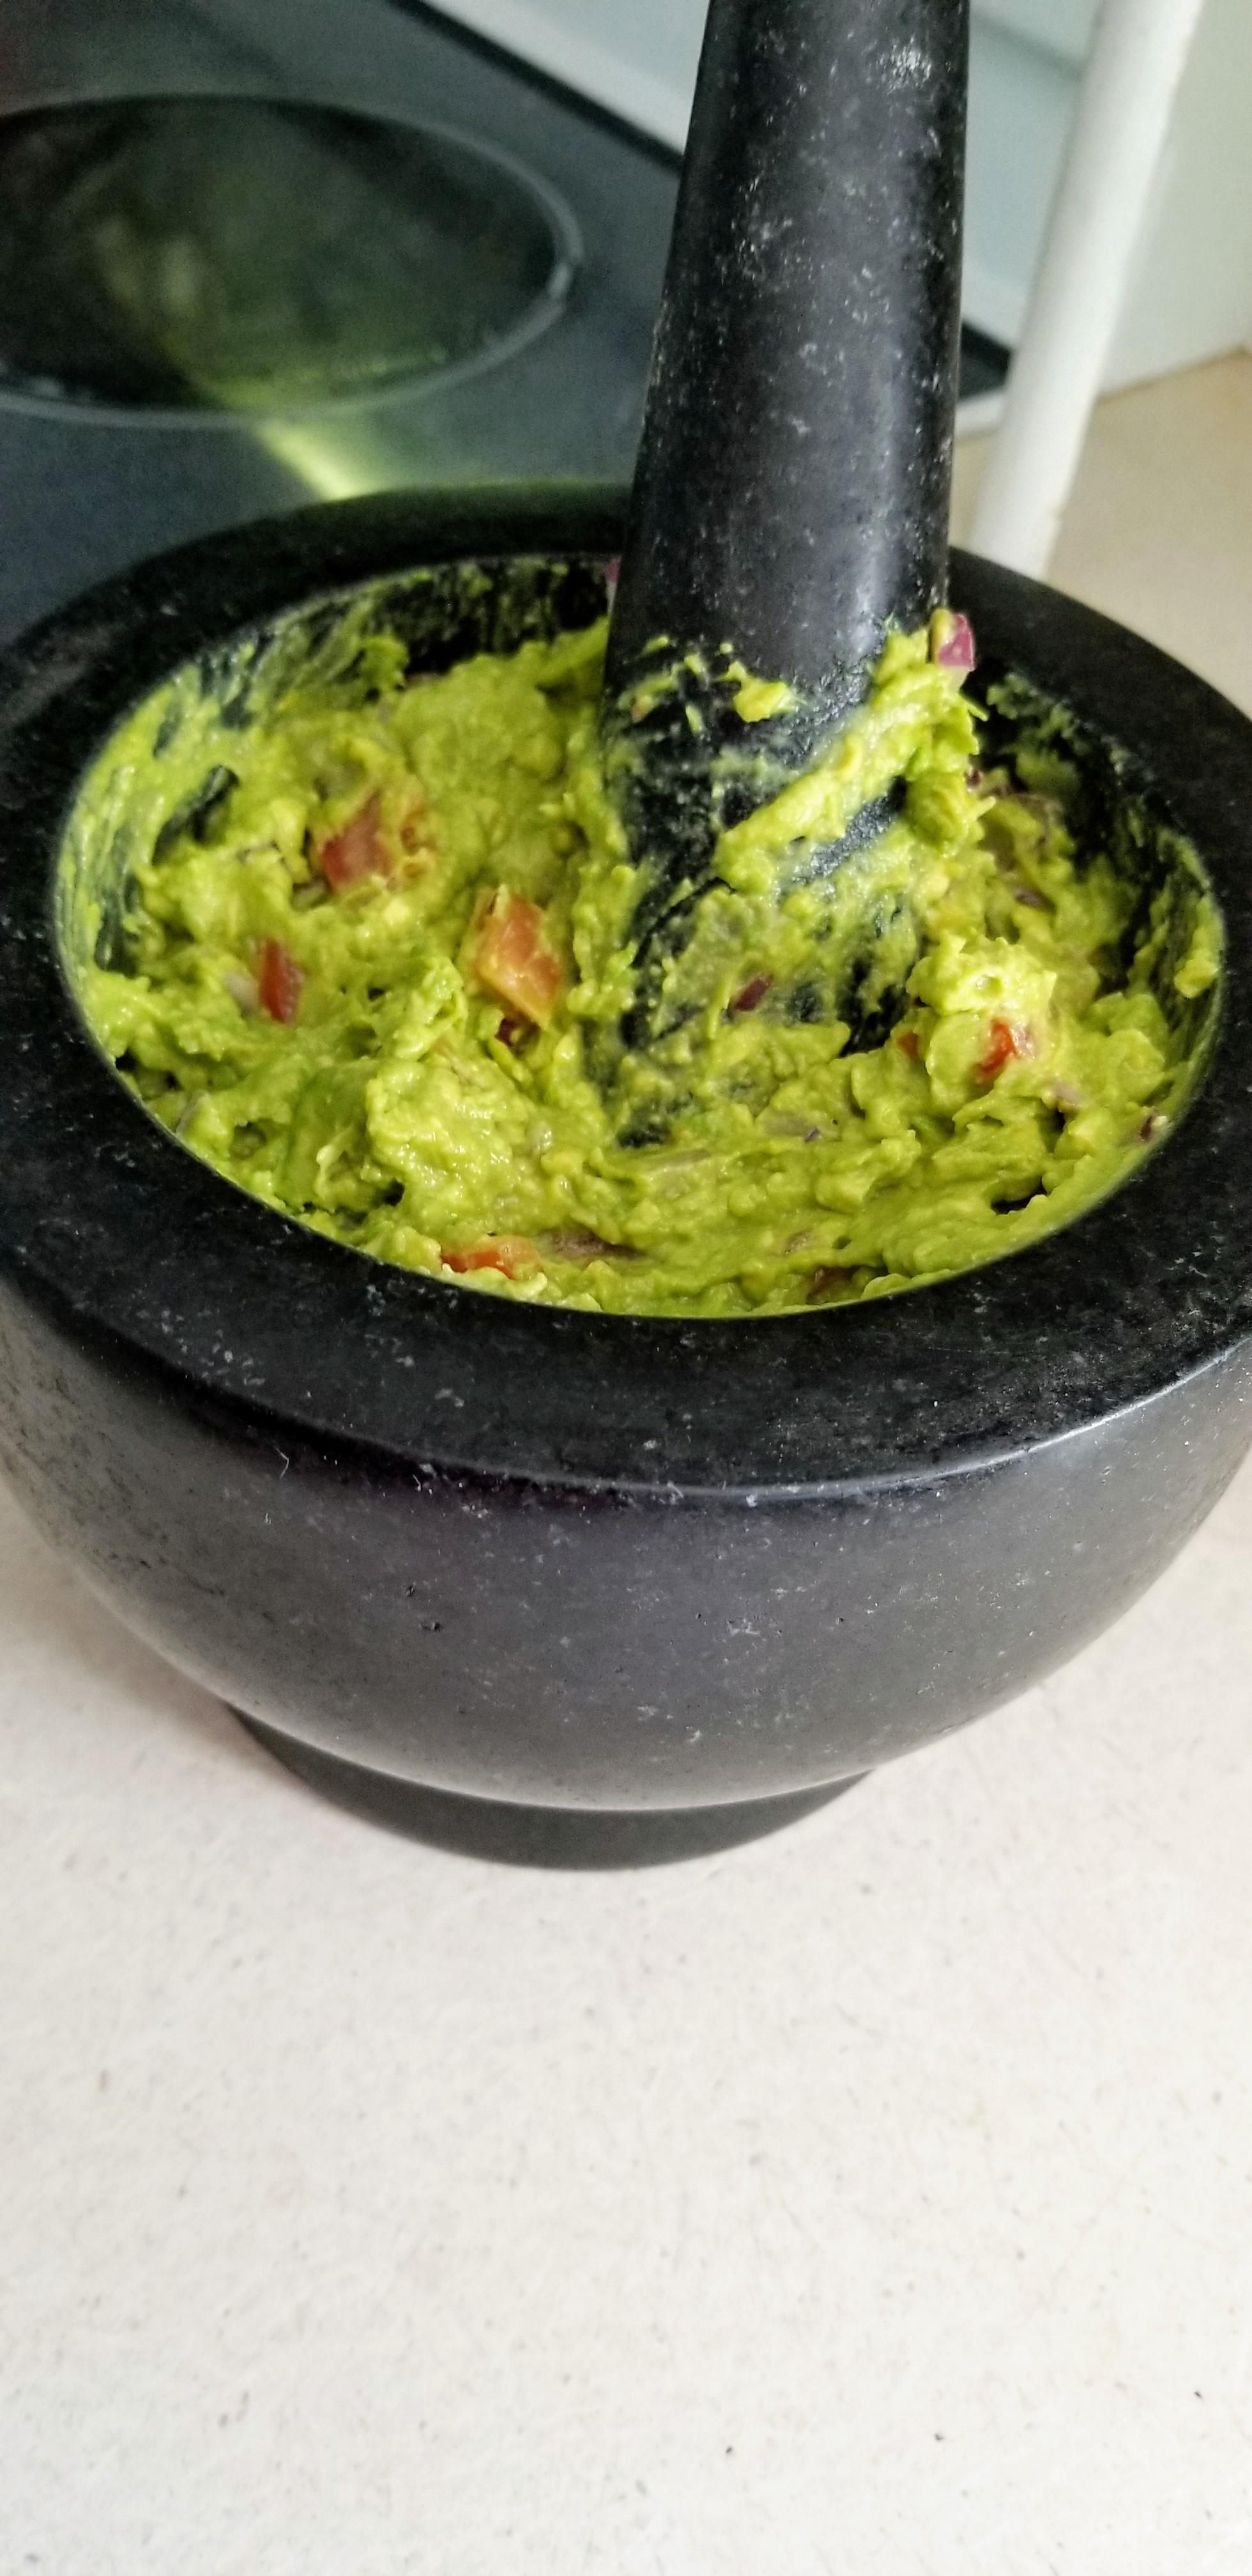 Homemade guacamole in mortar and pestle yummy pinterest homemade guacamole in mortar and pestle forumfinder Image collections